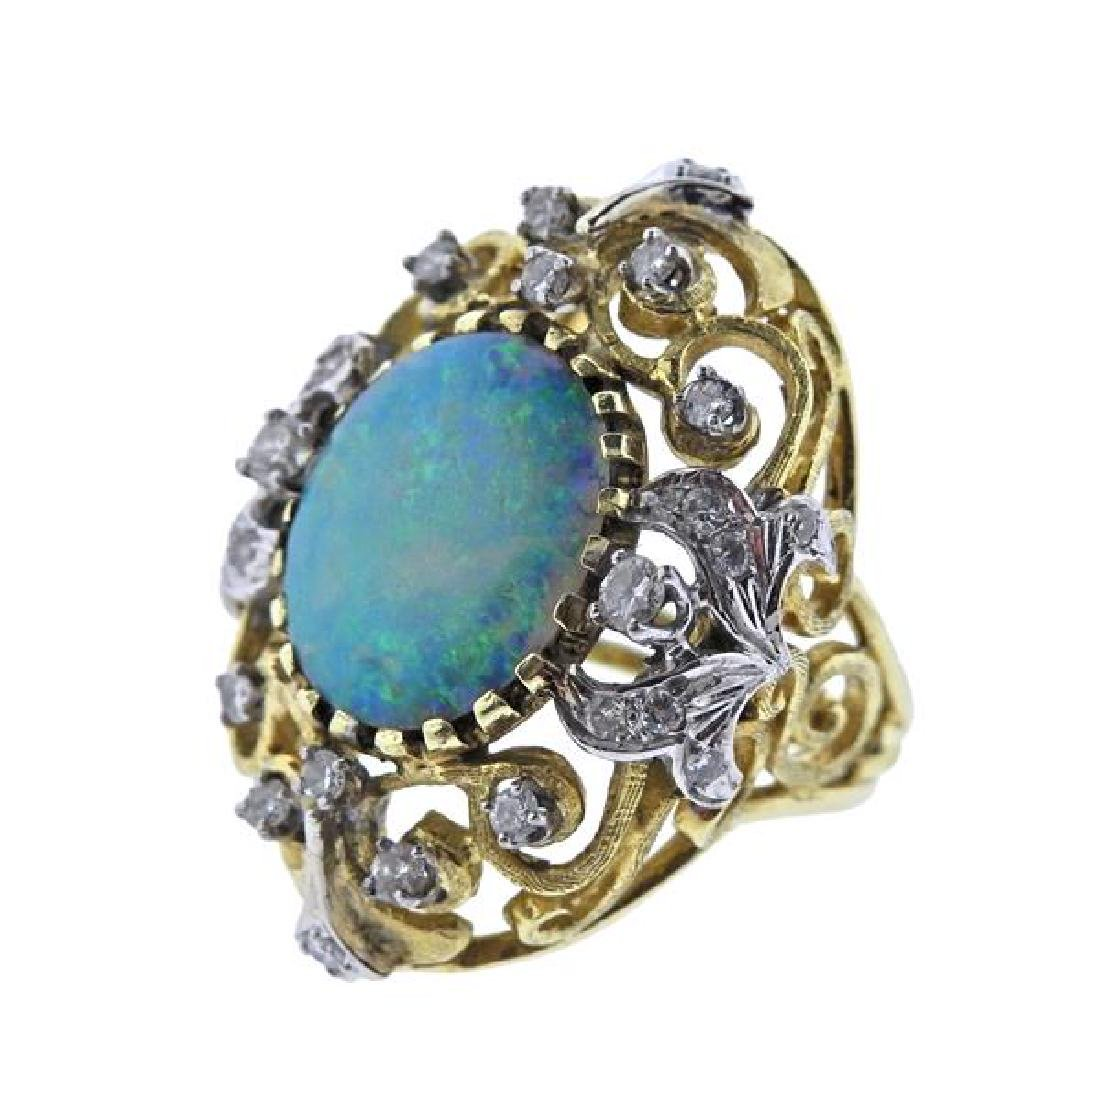 14K Gold Diamond Opal Open Work Cocktail Ring - 2